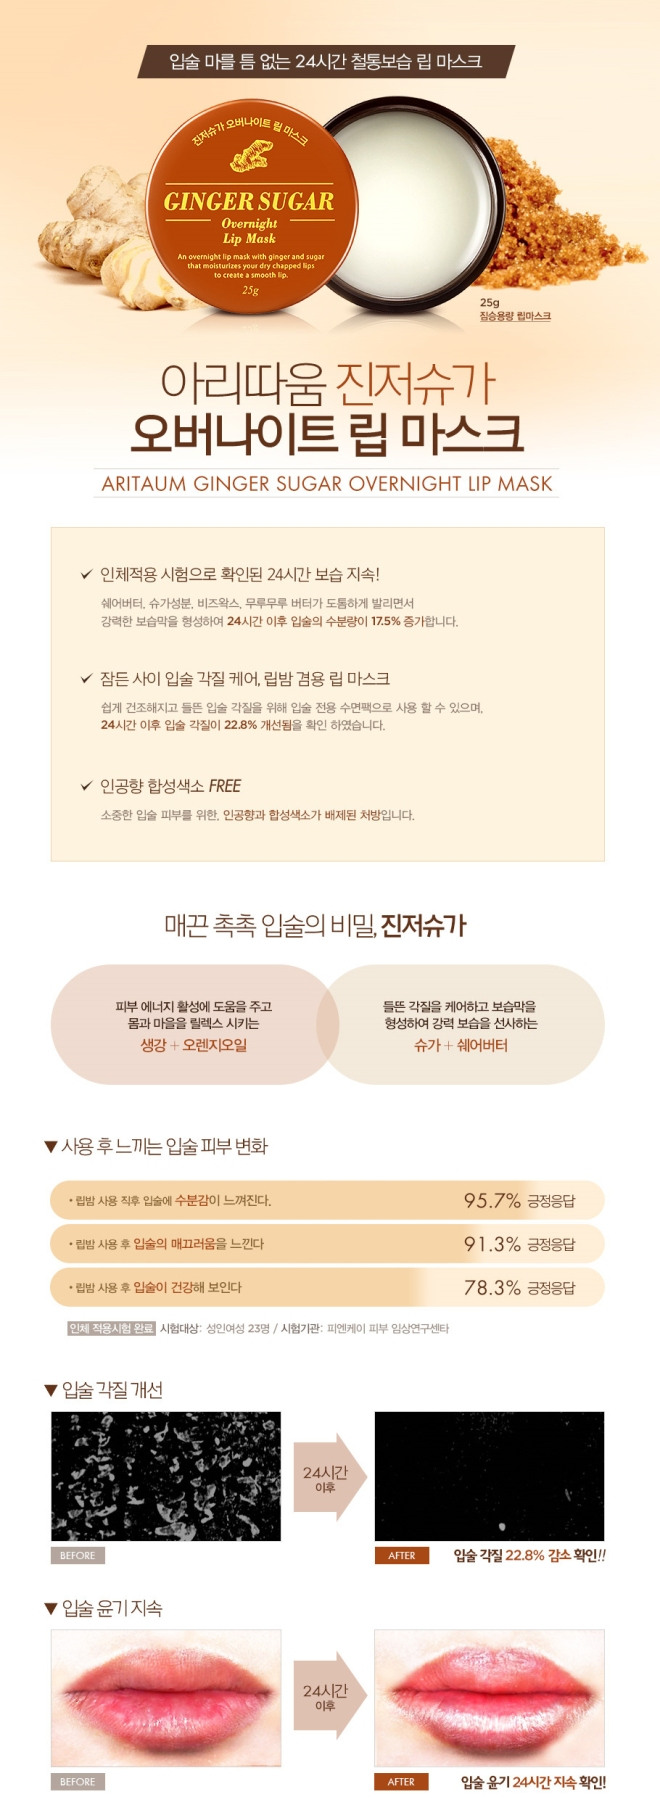 Aritaum Ginger Sugar Overnight Sugar Overnight Lip Mask (Info - Korea)